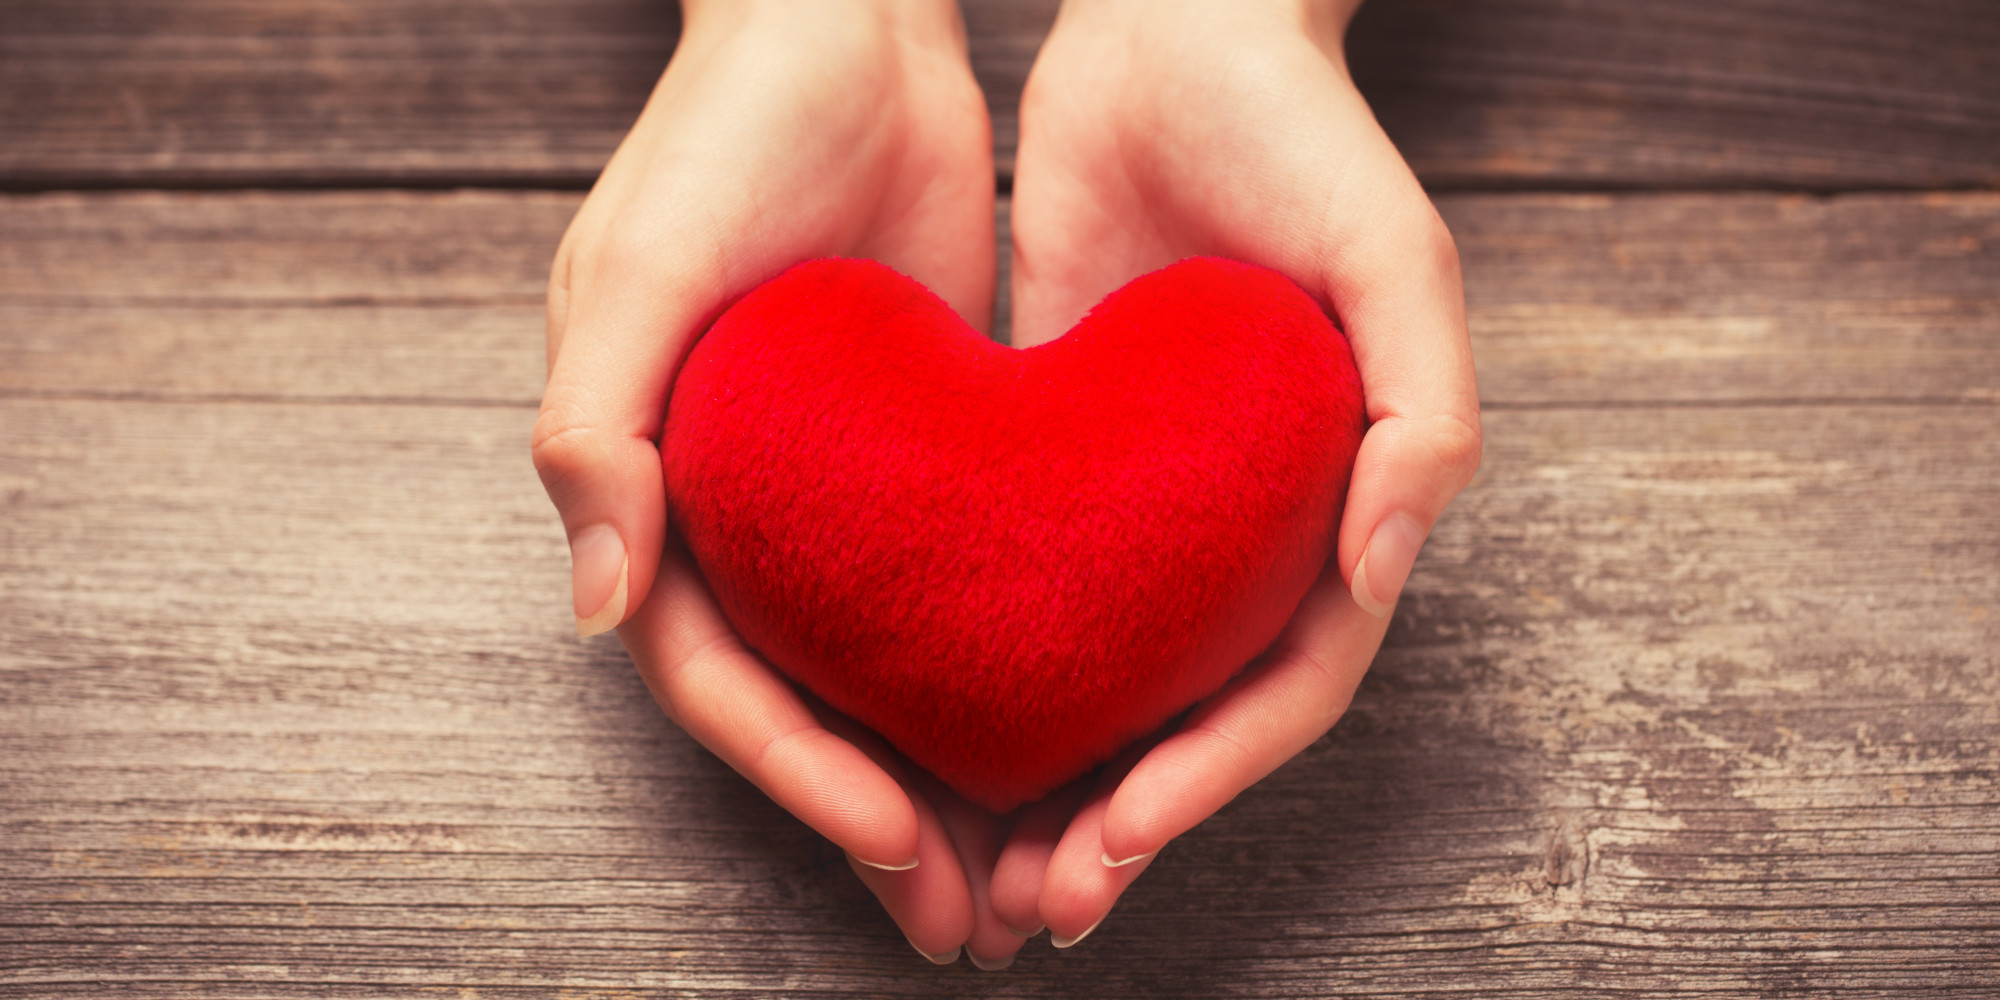 It Takes a Strong Head to Have a Healthy Heart | HuffPost